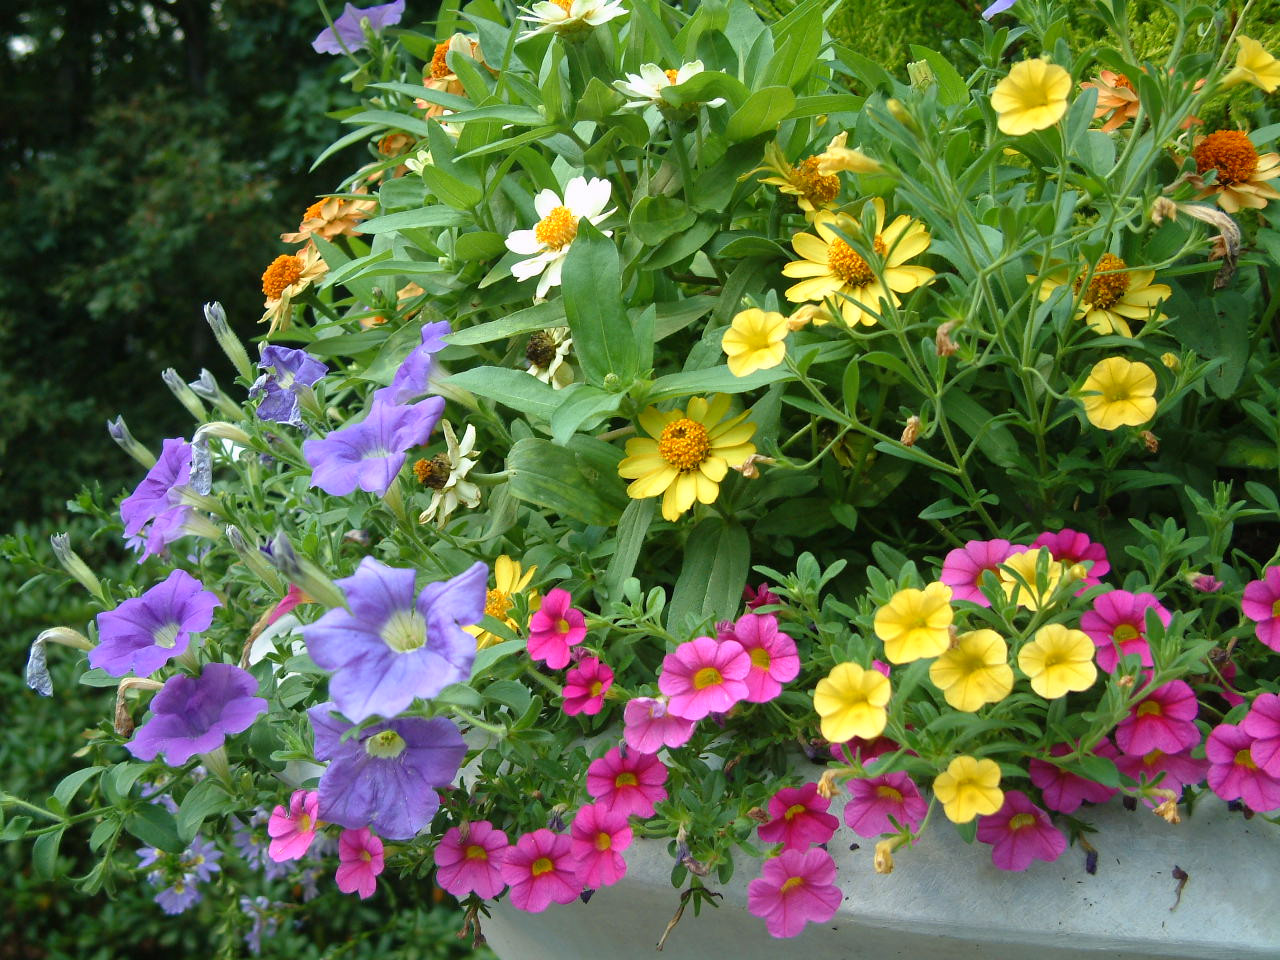 Seasonal color brightens the gardens and evolves throughout the seasons.